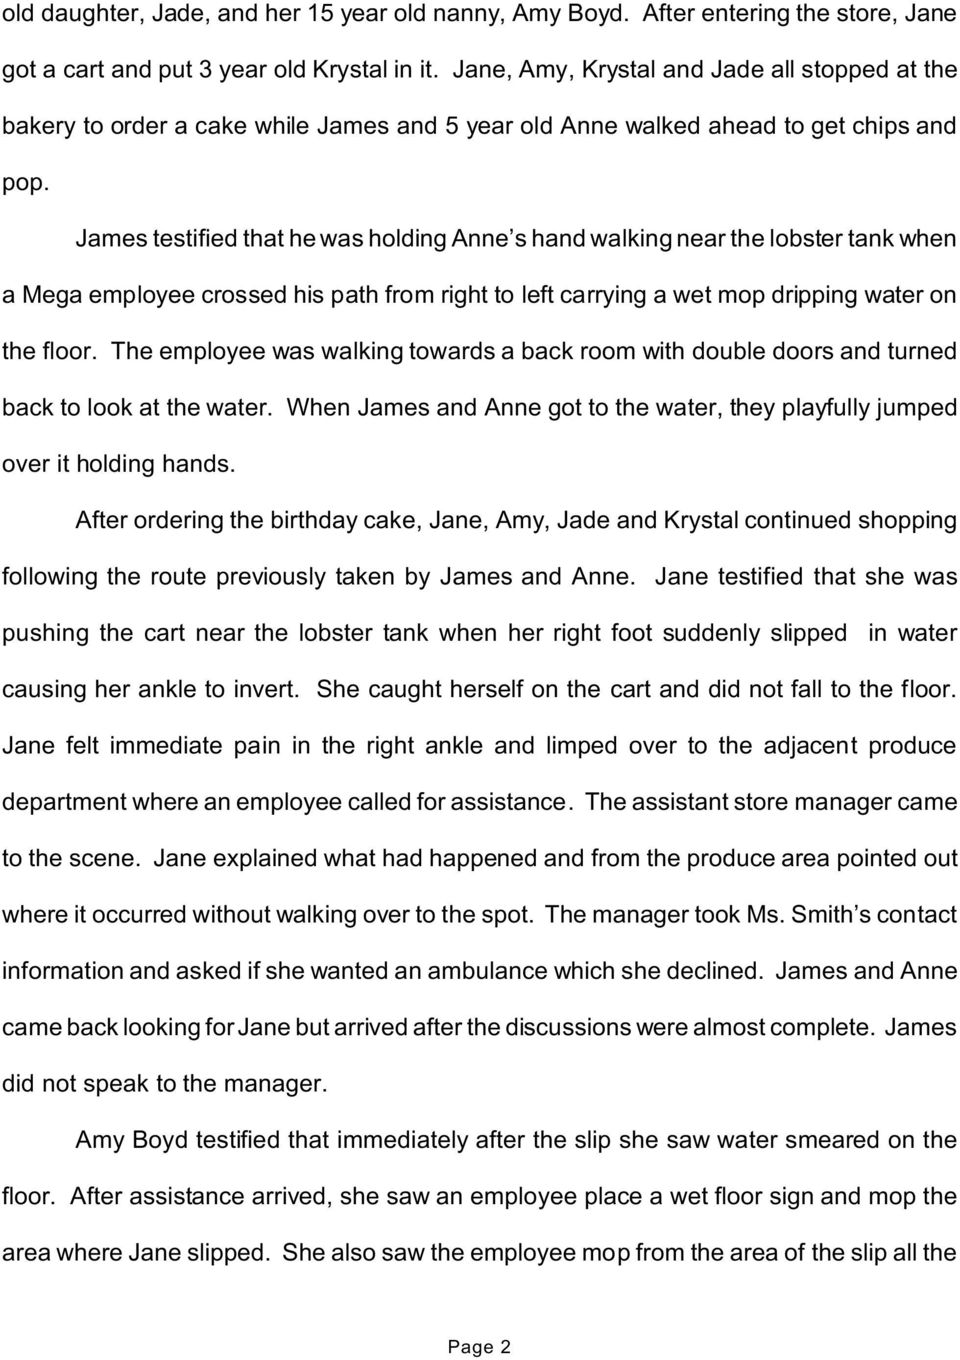 James testified that he was holding Anne s hand walking near the lobster tank when a Mega employee crossed his path from right to left carrying a wet mop dripping water on the floor.